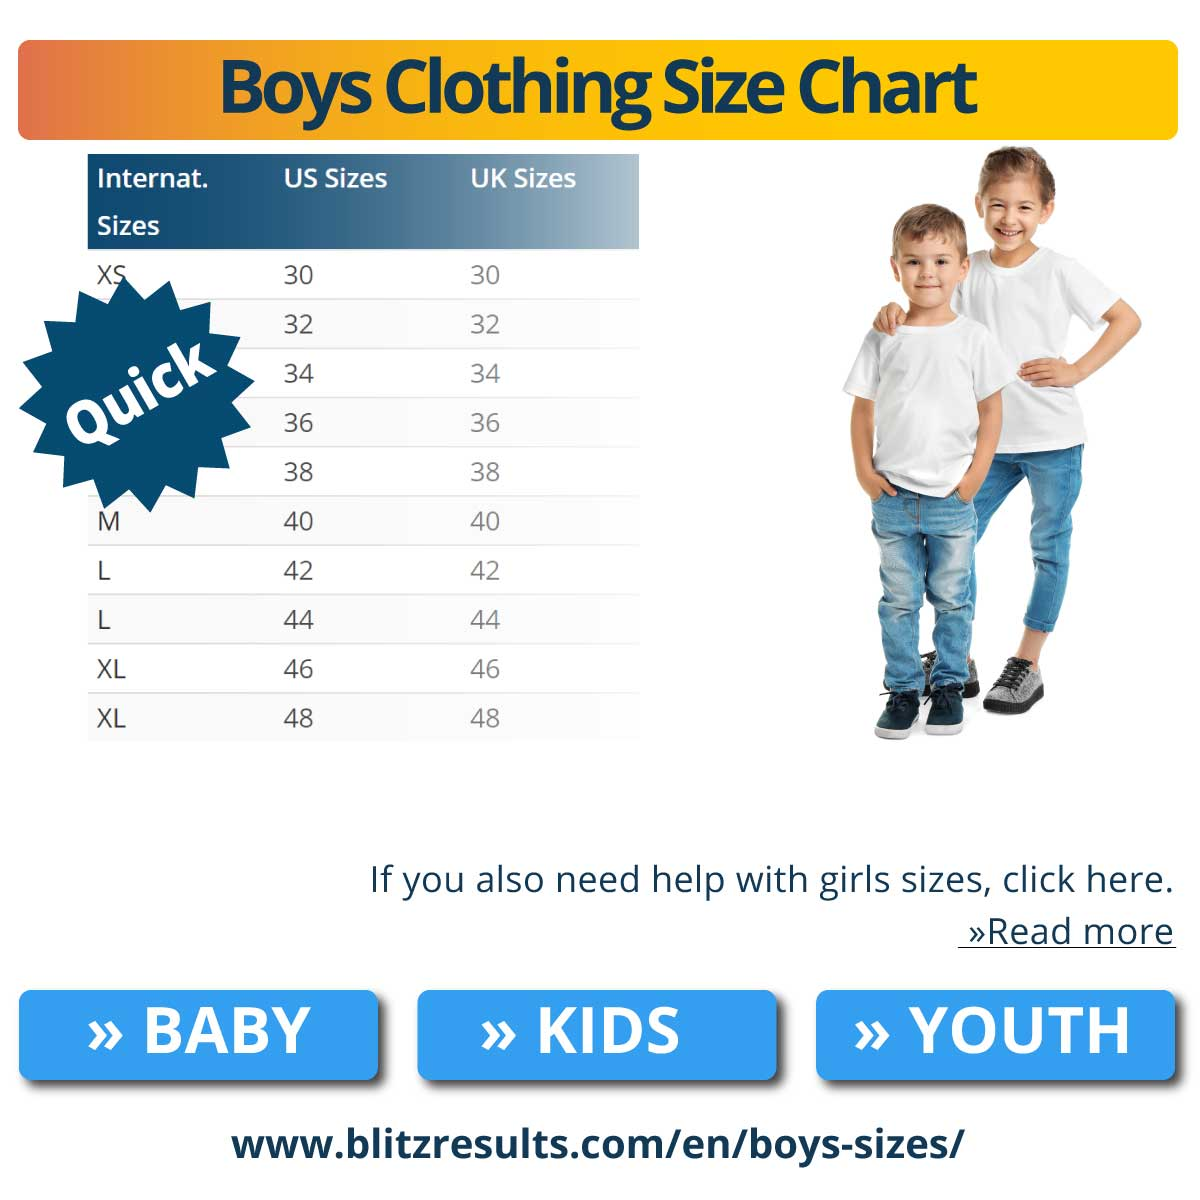 Boys Clothing Size Chart